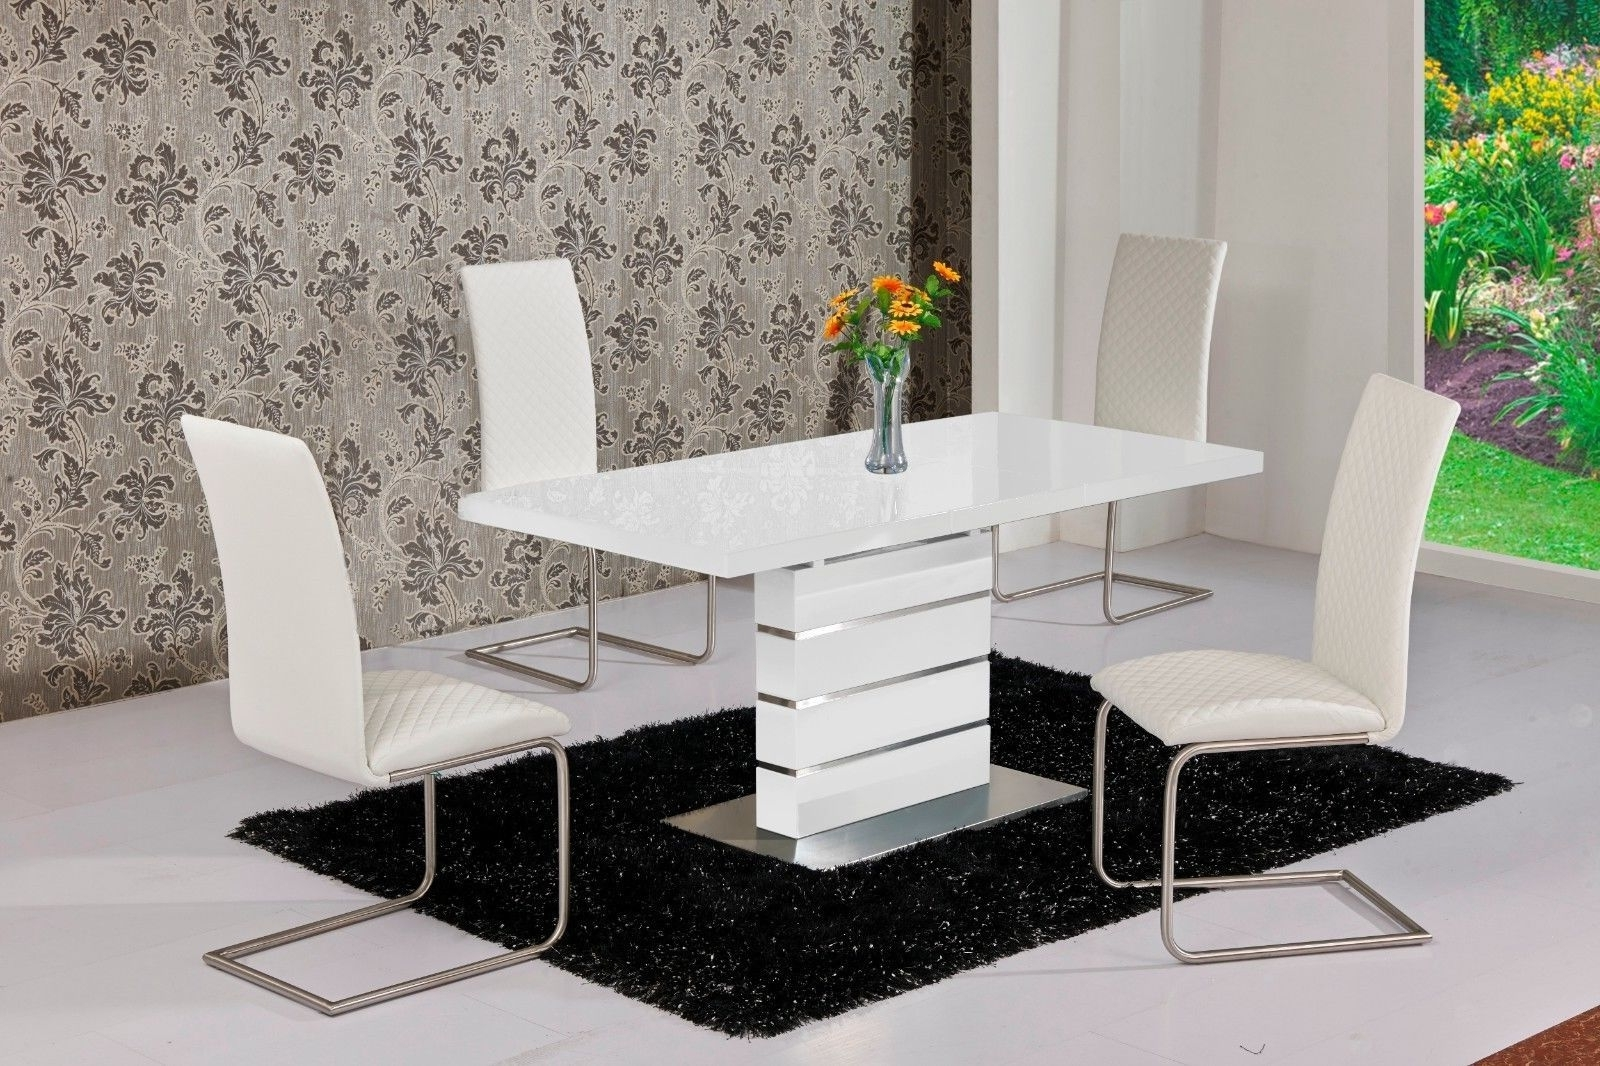 Well Known White High Gloss Dining Tables 6 Chairs With Mace High Gloss Extending 120 160 Dining Table & Chair Set – White (View 5 of 25)